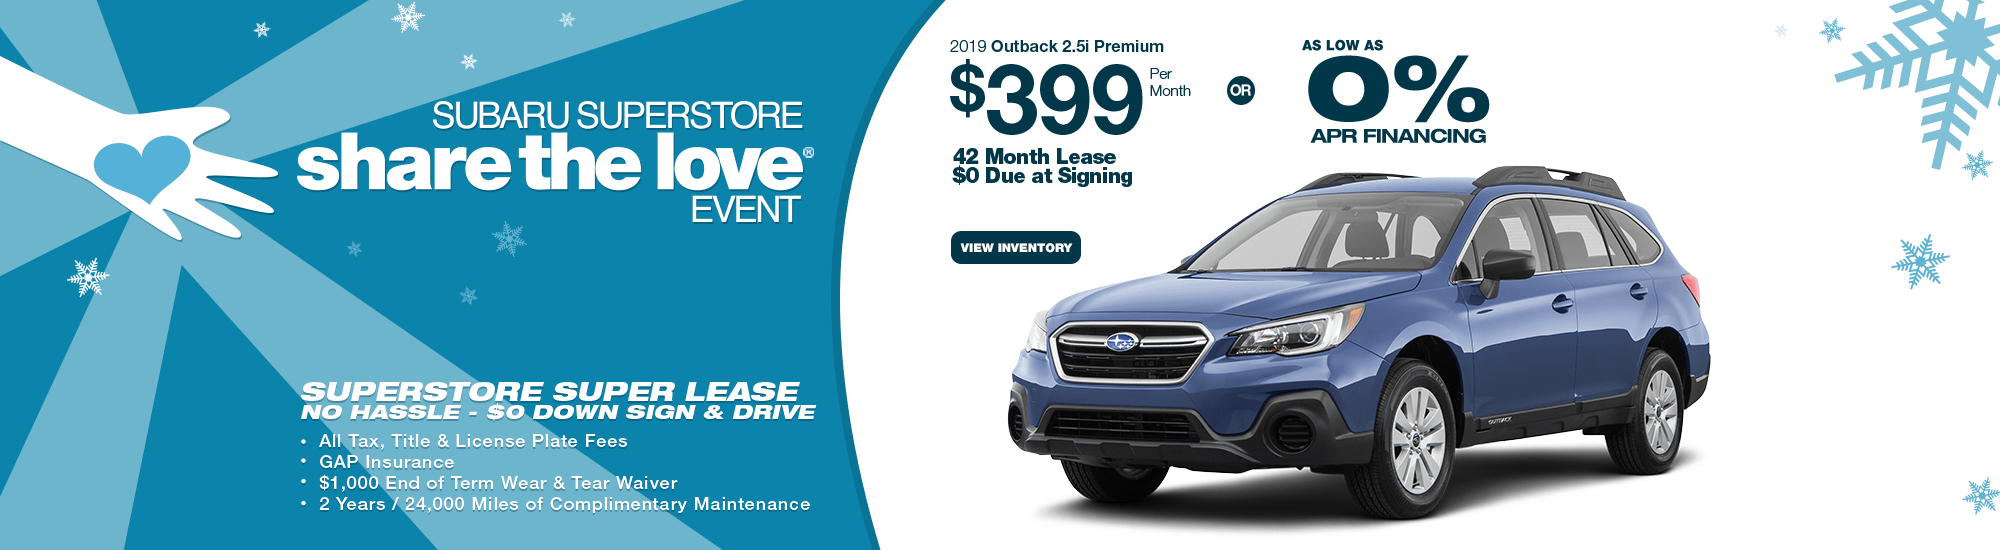 New 2019 Outback 2.5i Premium Special Lease & Finance Savings at Subaru Superstore of Chandler